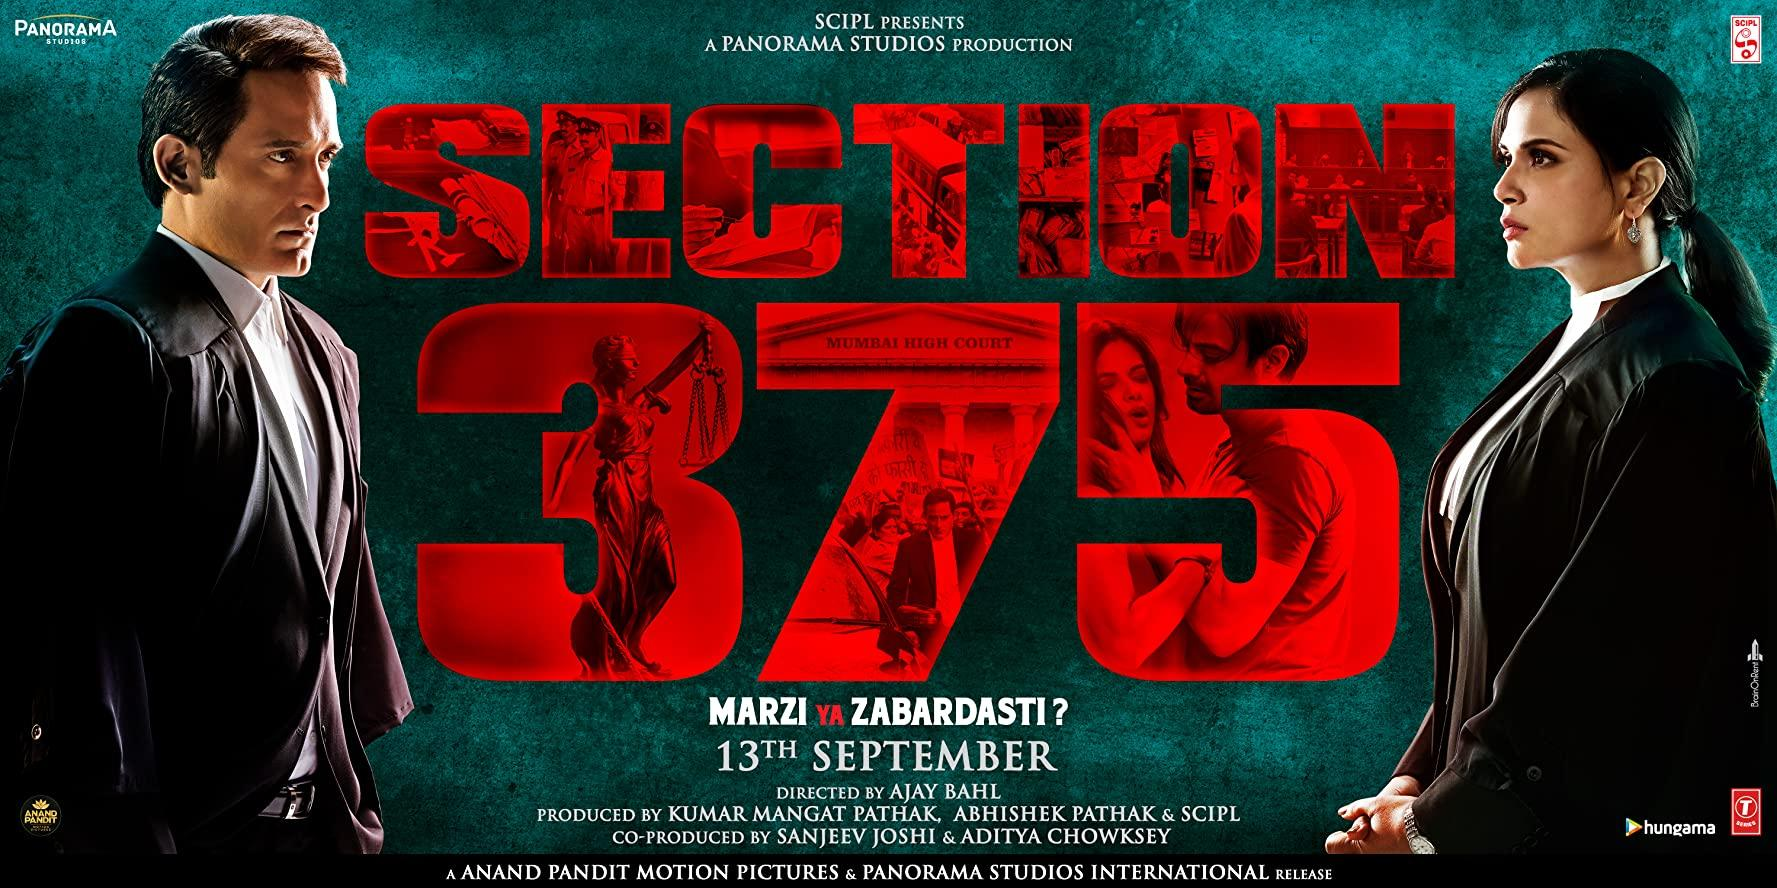 مشاهدة فيلم Section 375 (2019) مترجم HD اون لاين